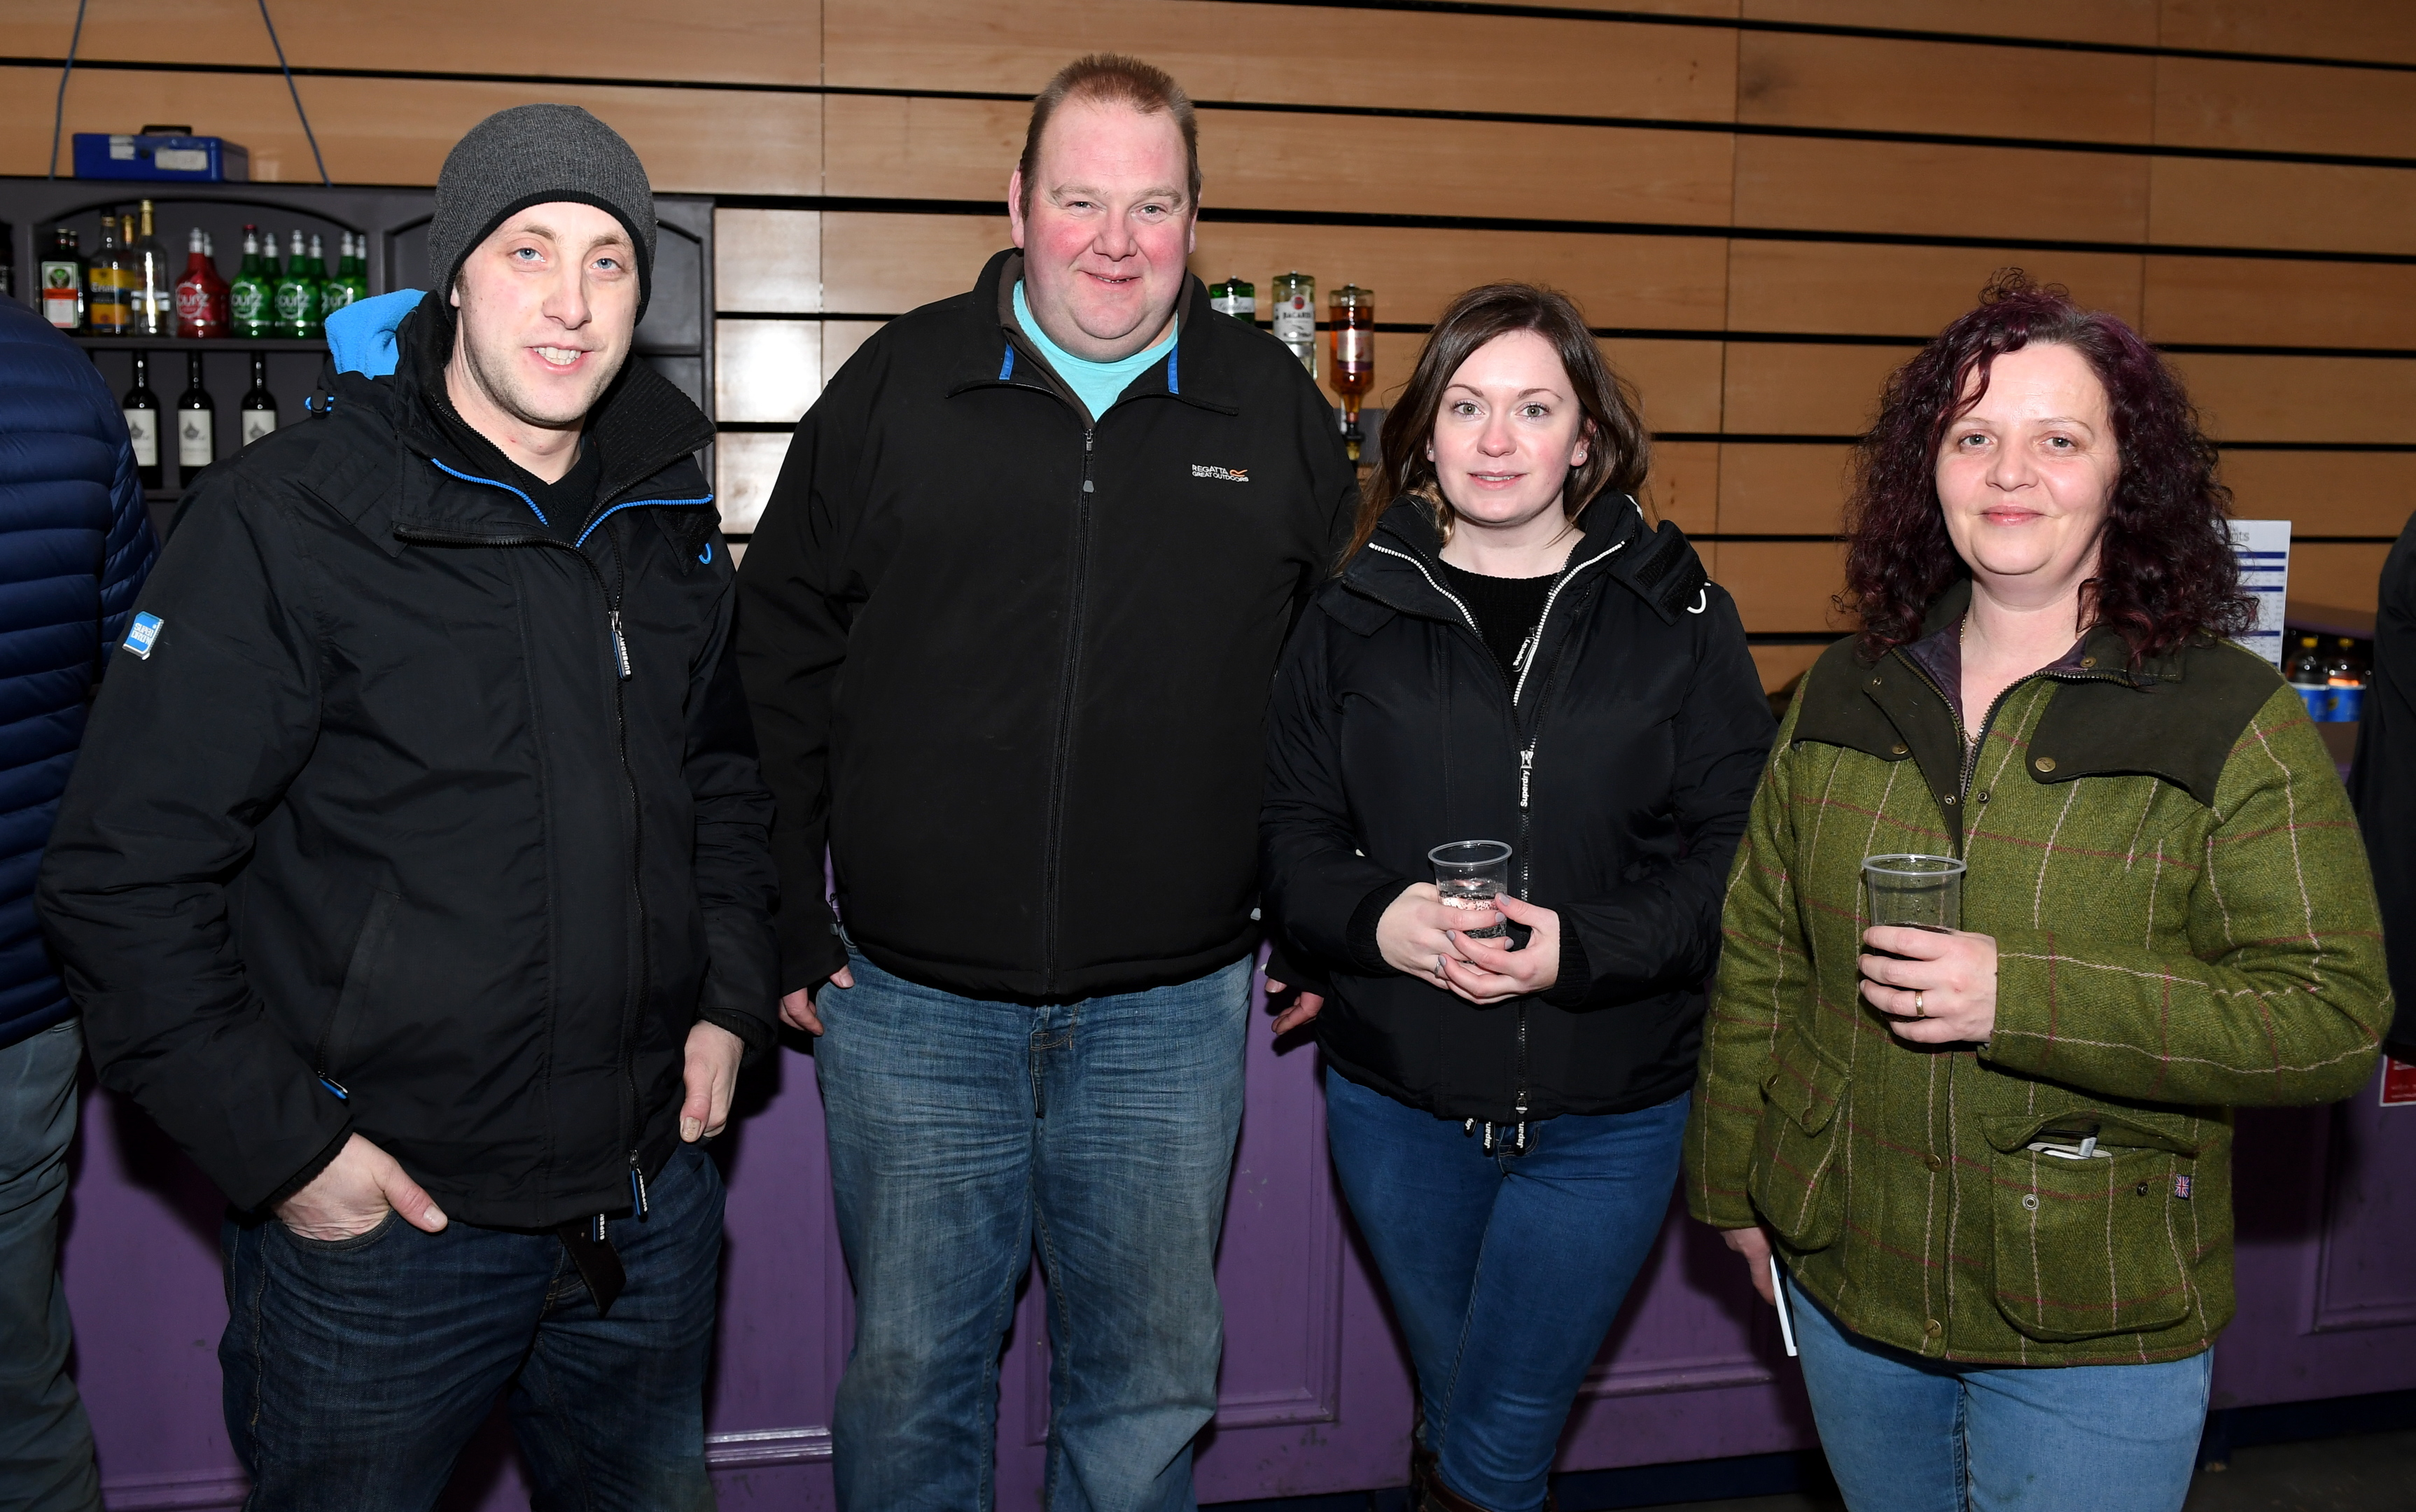 Pictured - Jamie Coghill, Kevin MacKay, Zoe Stewart, Wilma Stewart.      Picture by Kami Thomson